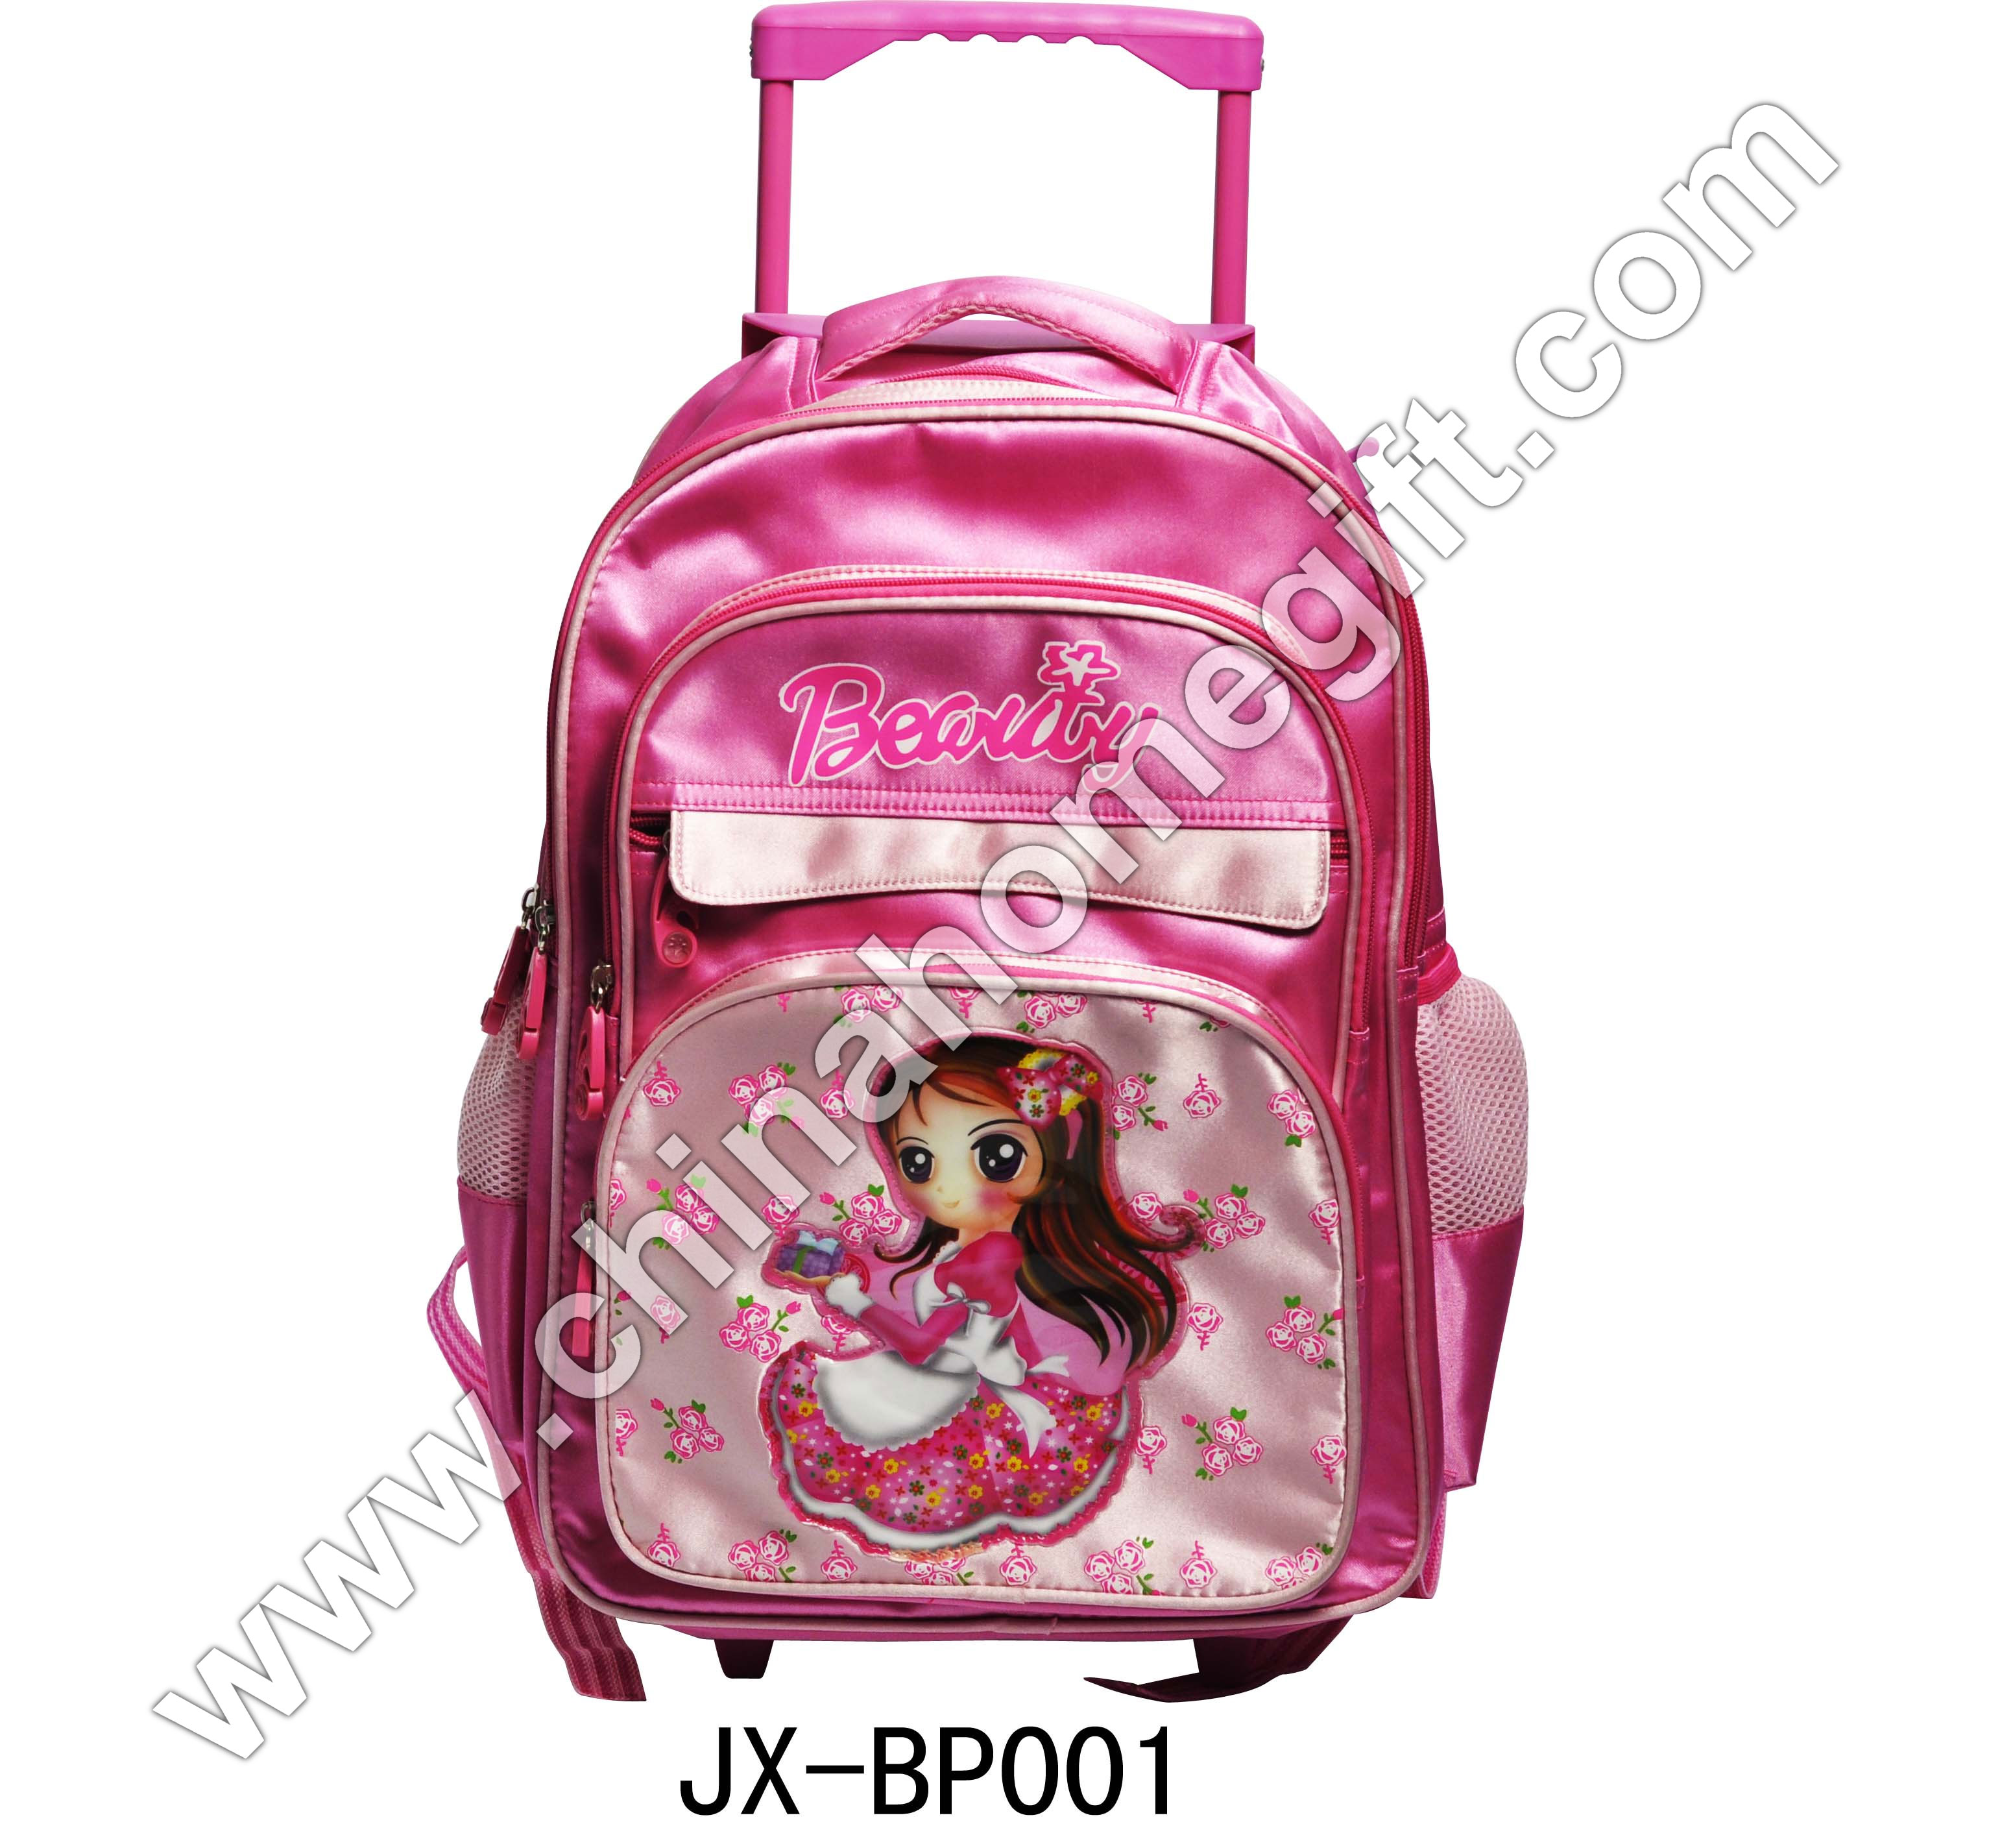 Product Images: Girls Trolley School Backpack